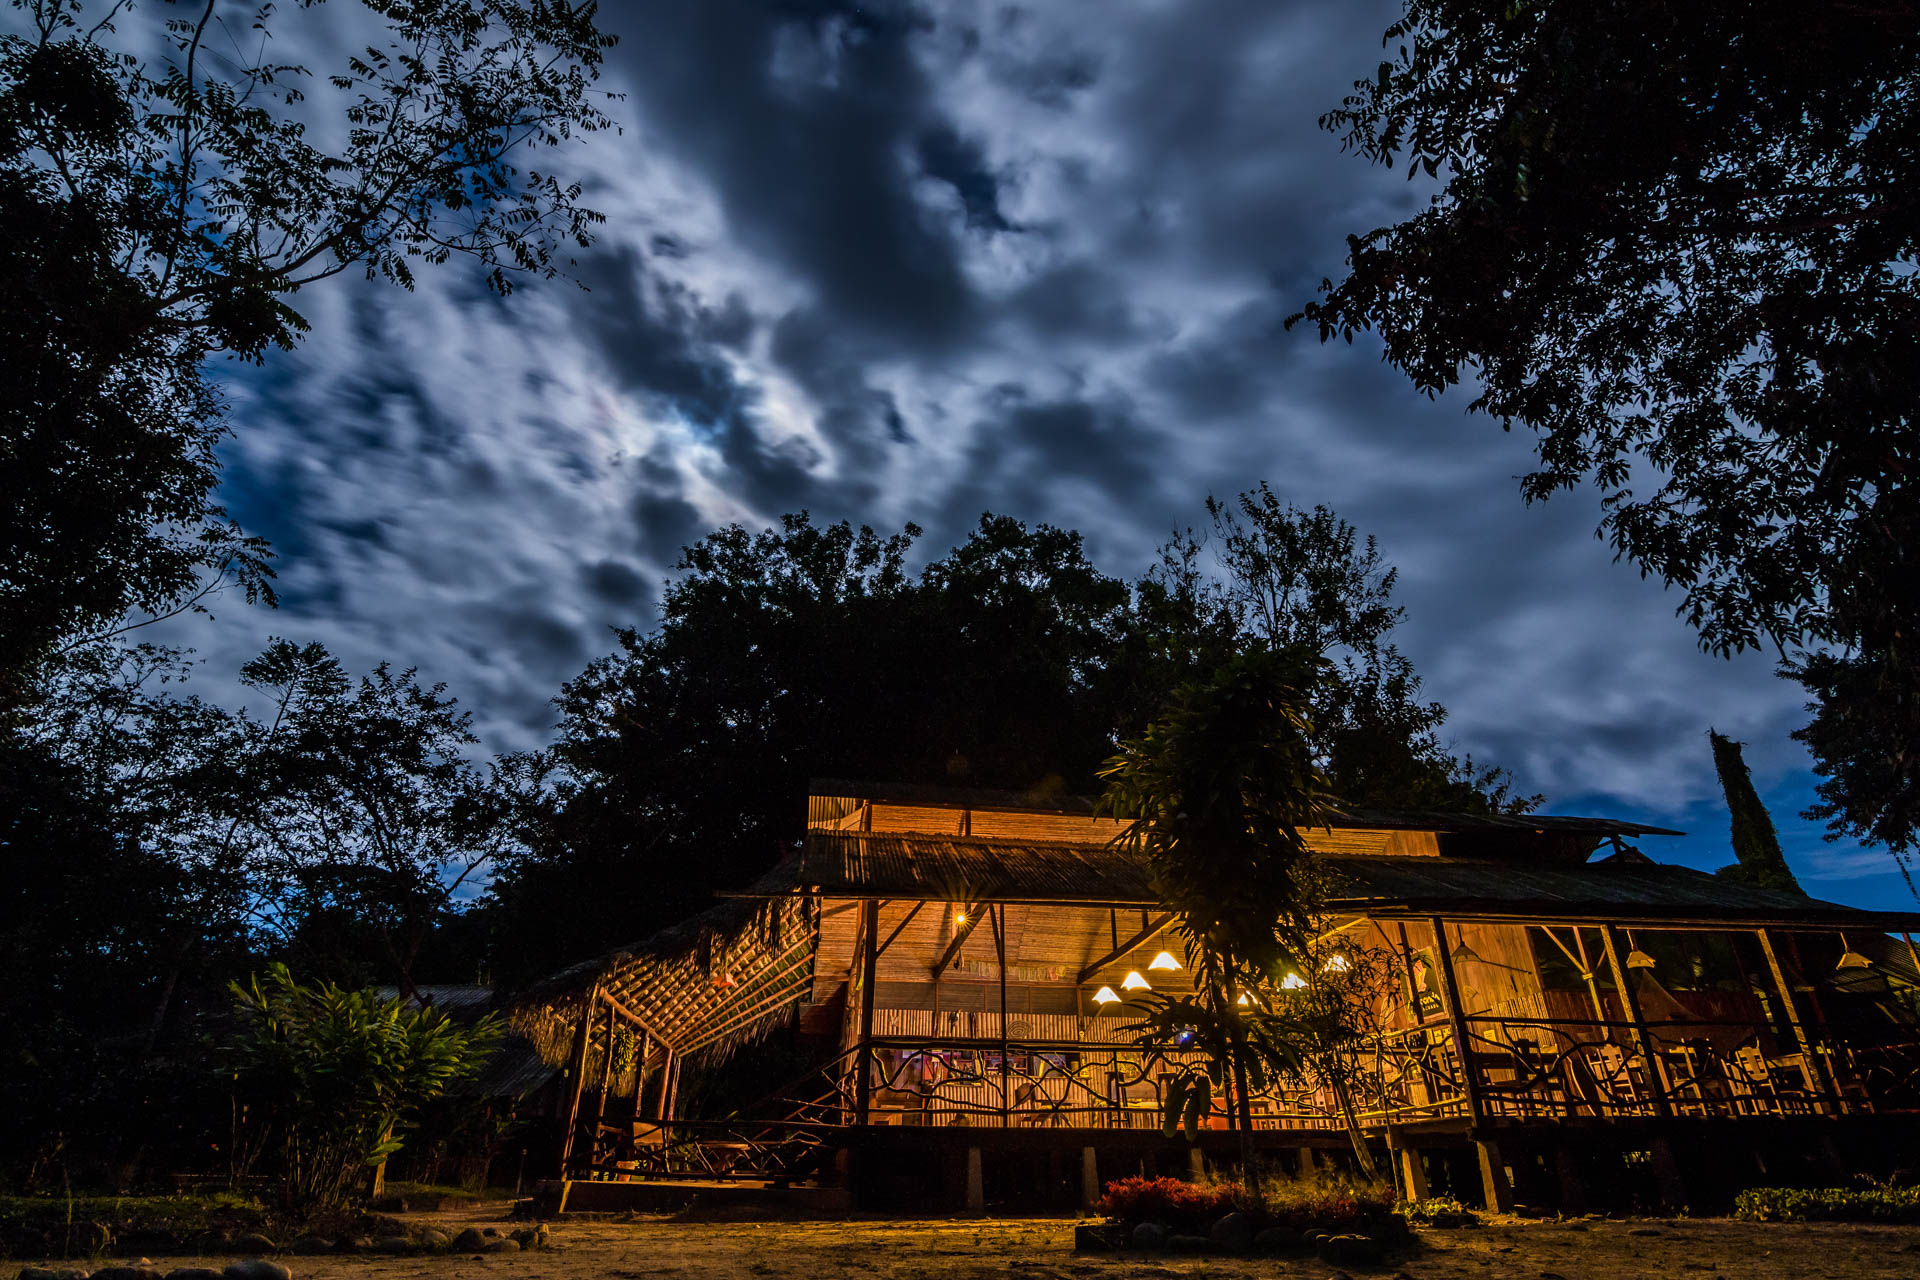 Anaconda Lodge Ecuador Amazon Rainforest